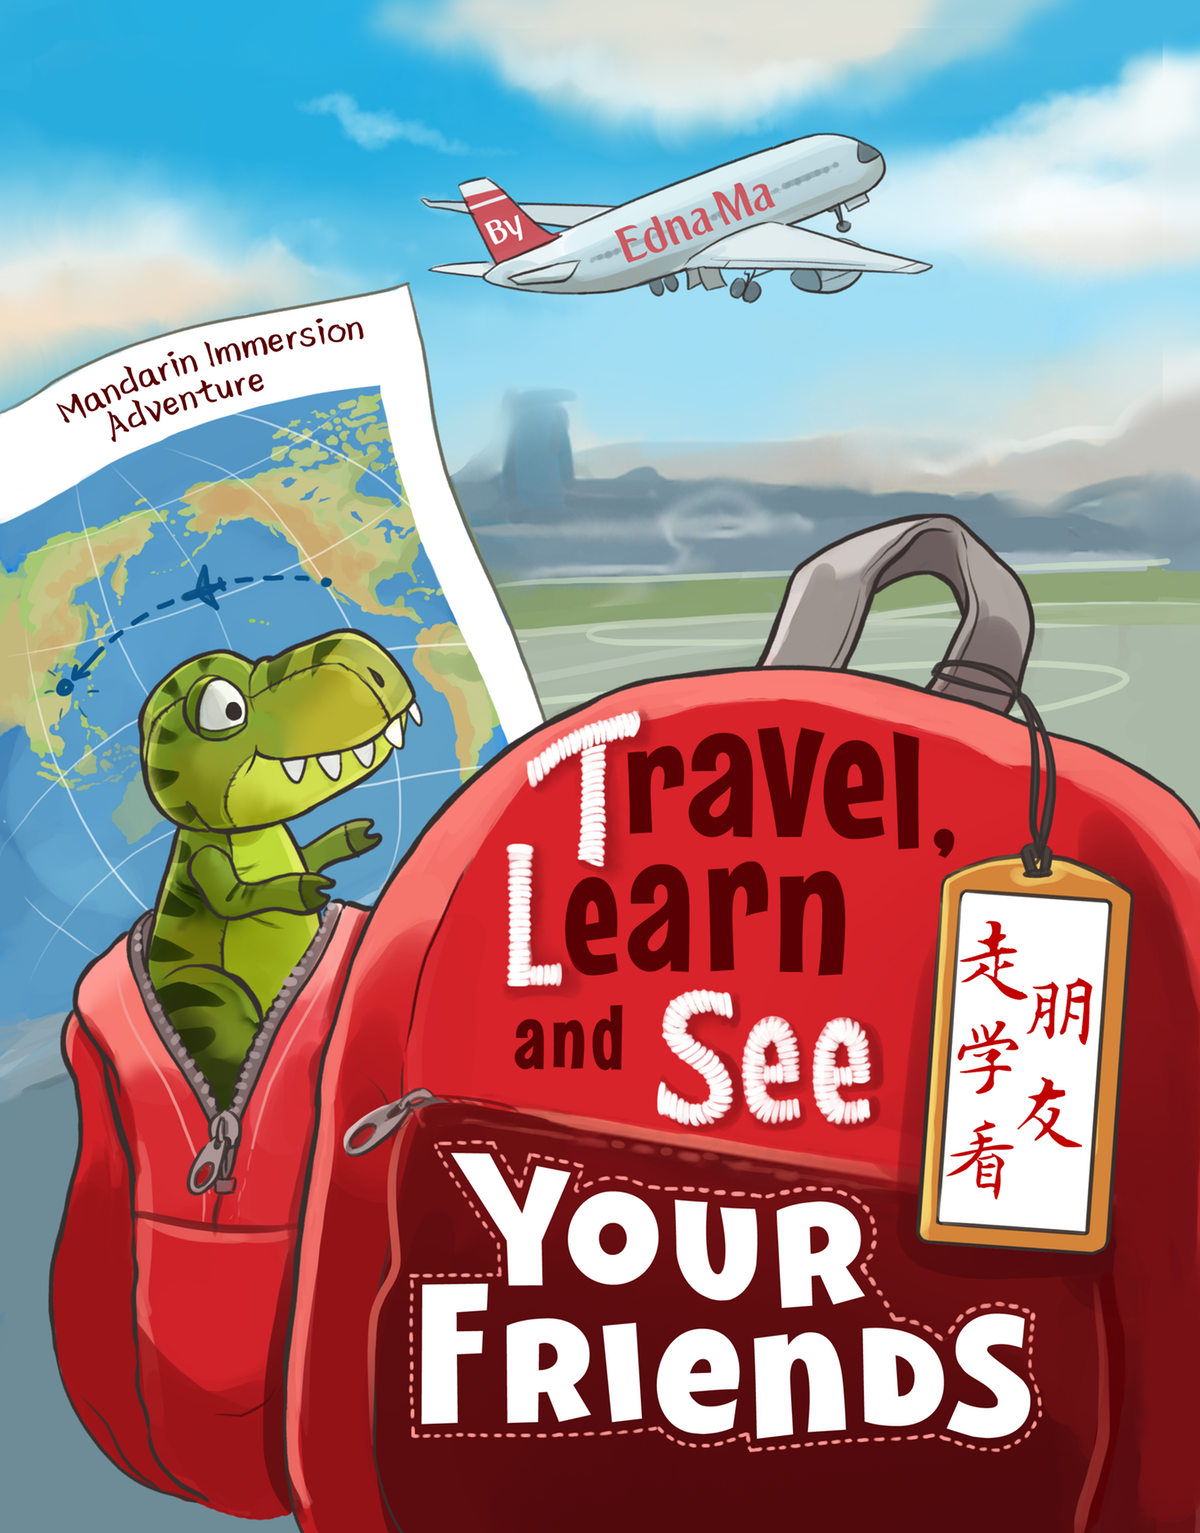 Book Cover for Mandarin Immersion